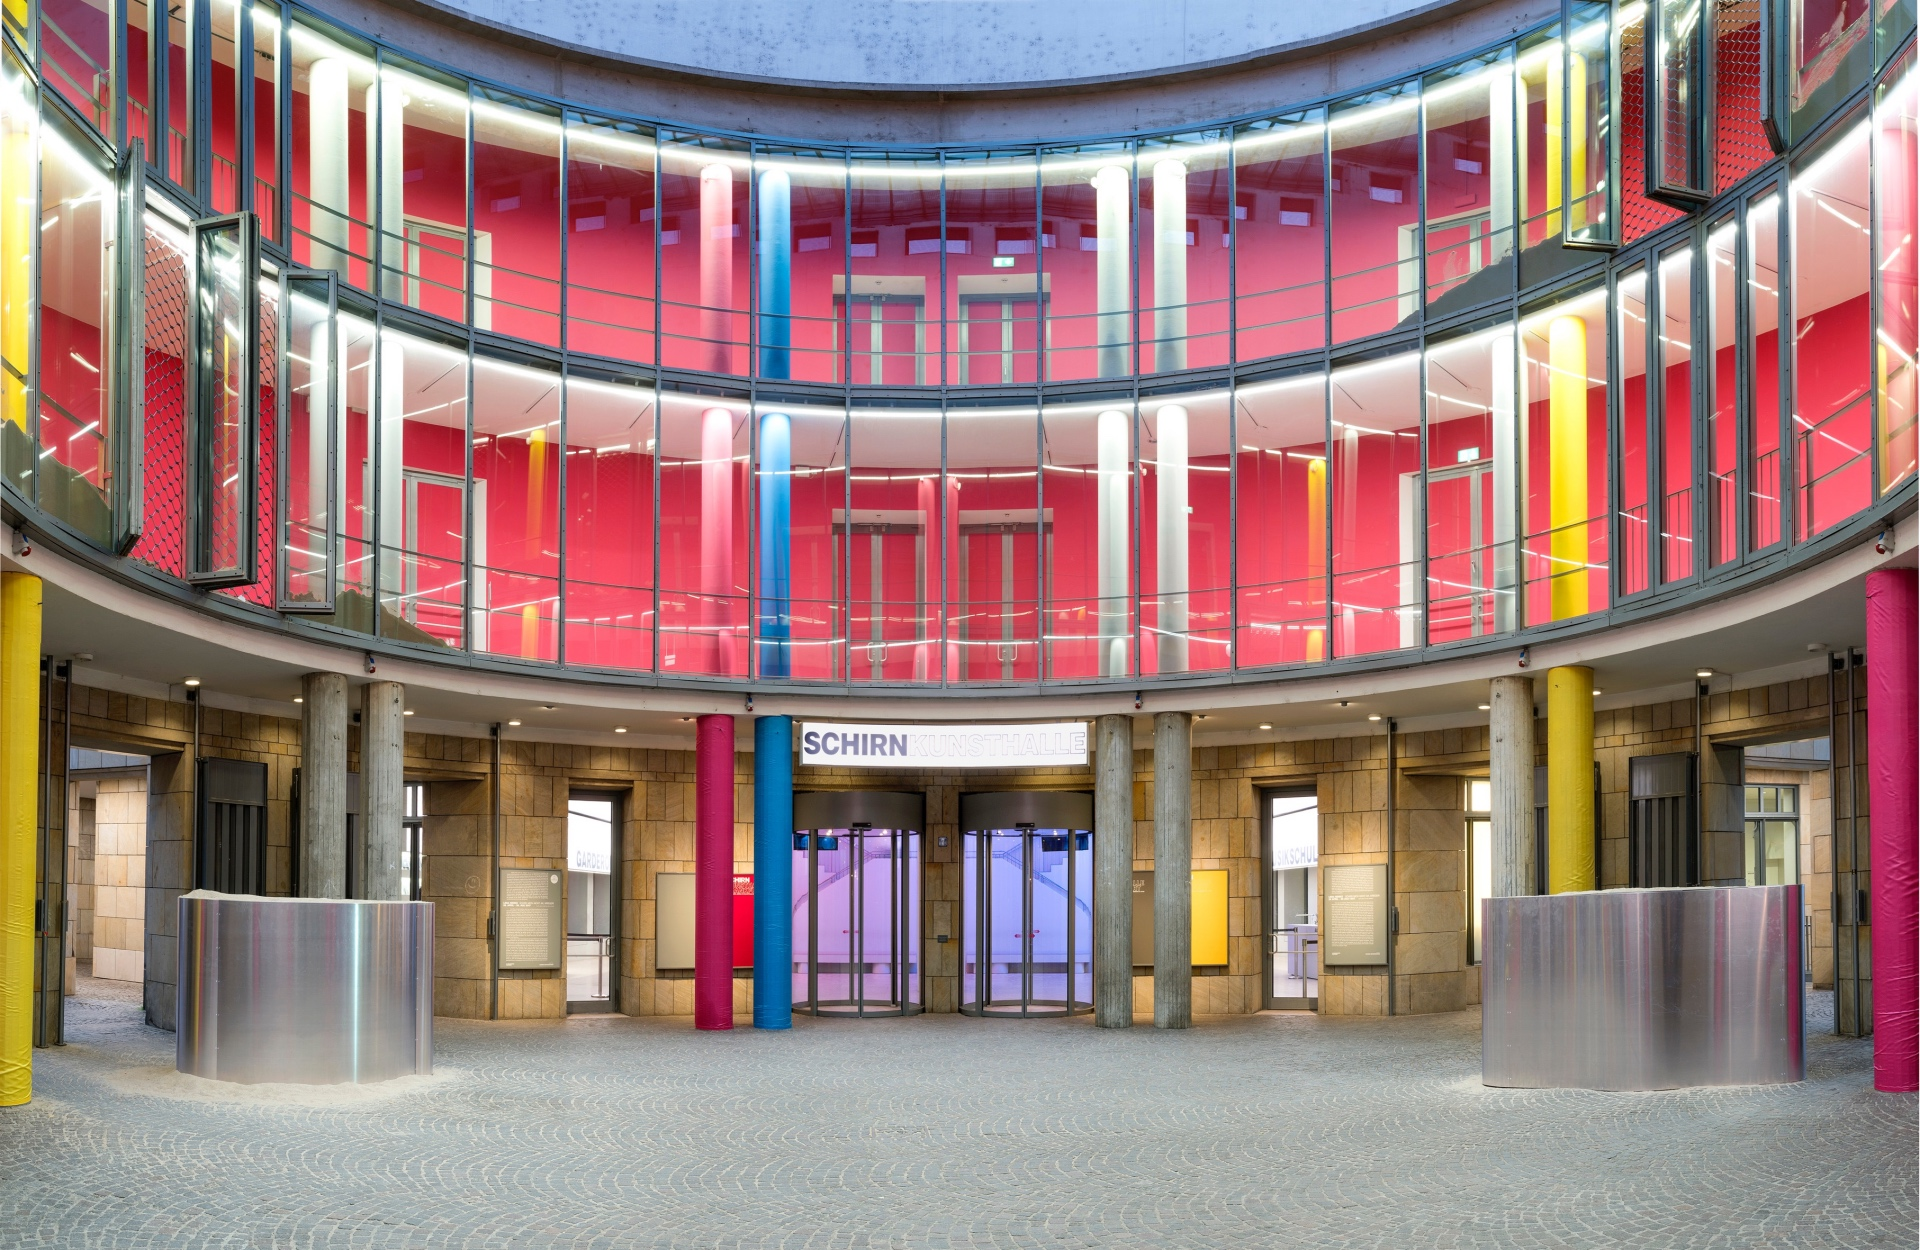 In any case, it is loud - SCHIRN MAG